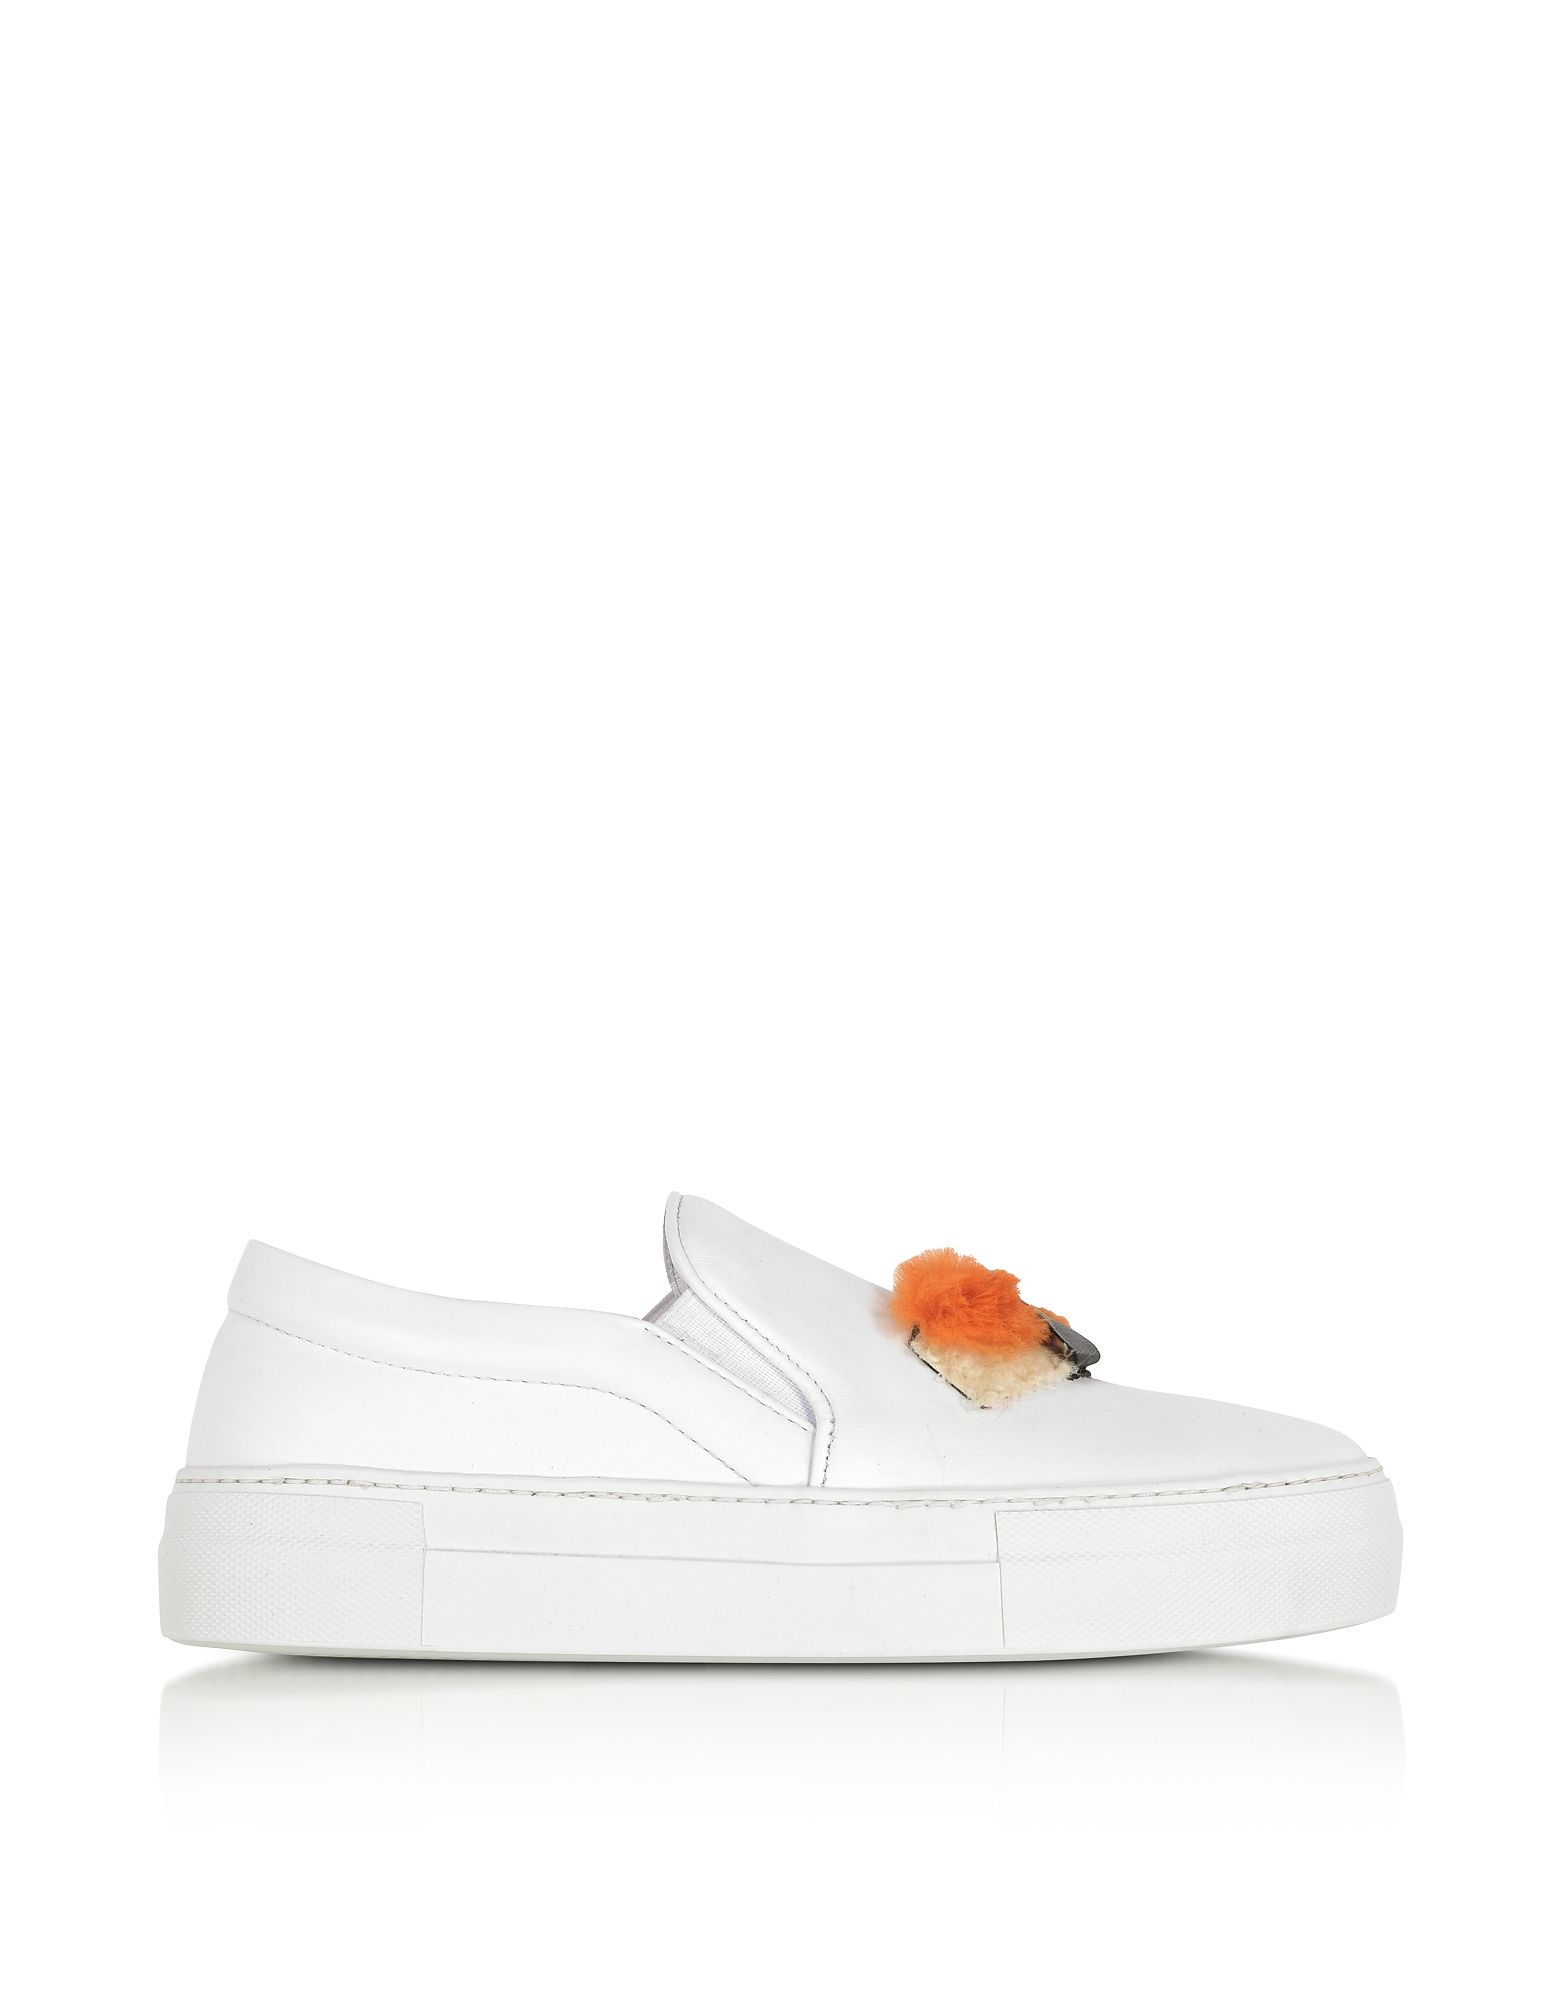 JOSHUA SANDERS Designer Shoes, Sushi Leather Slip On Women's Sneakers